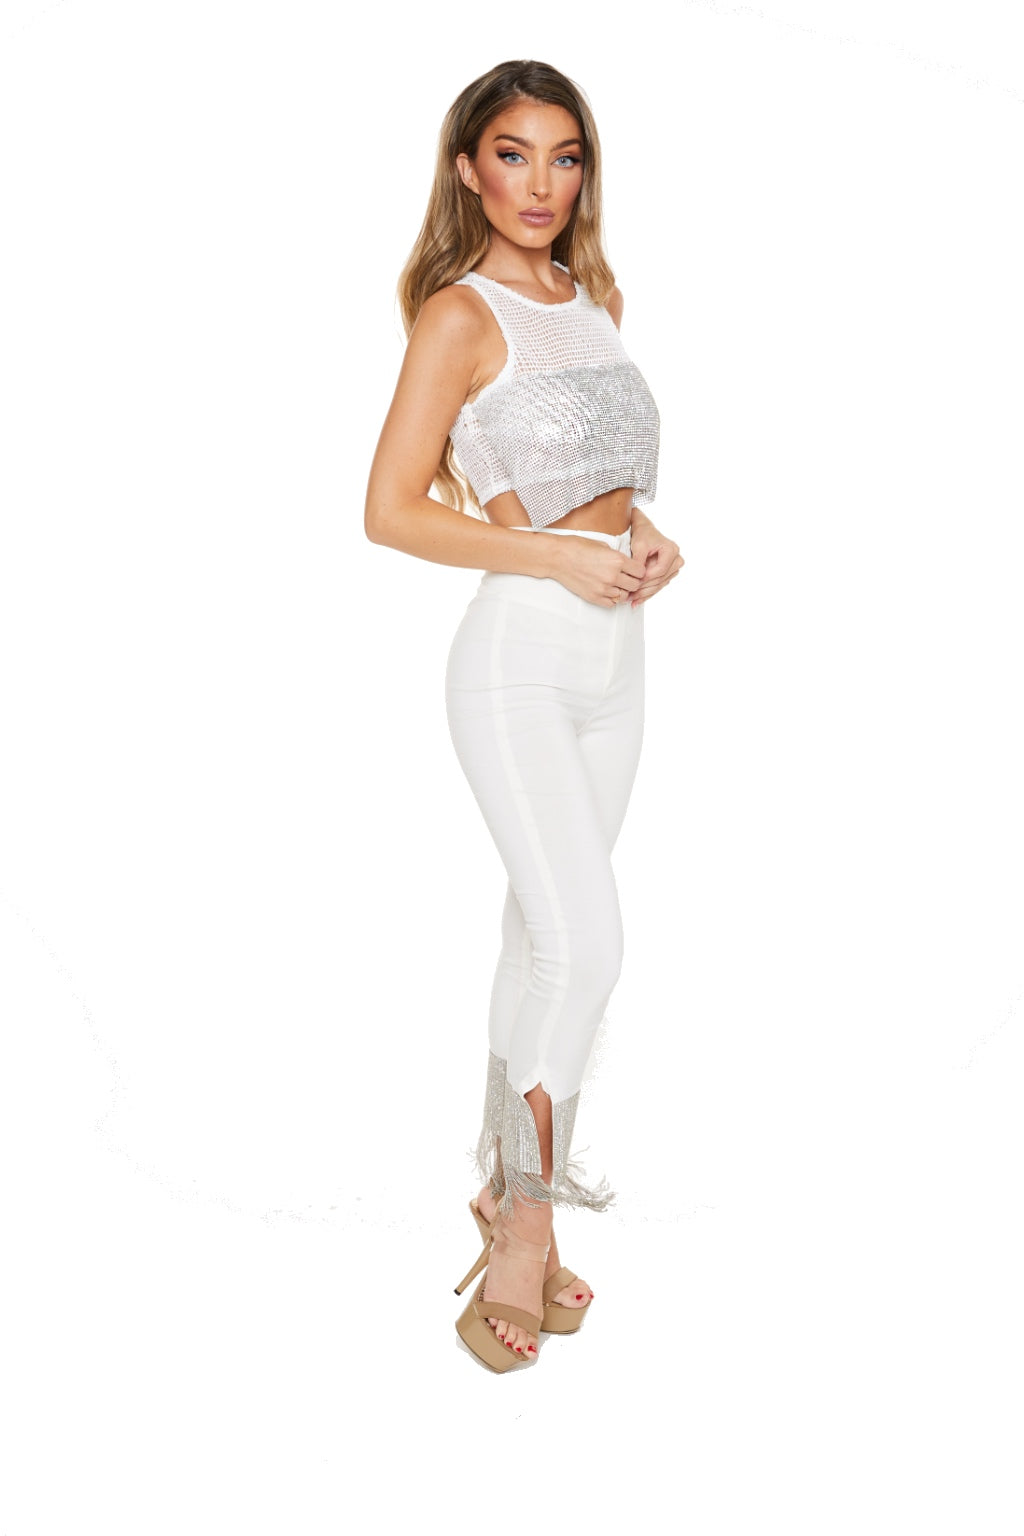 I'M WALKING IN - DIAMOND TASSEL PANTS - www.prettyboutique.com